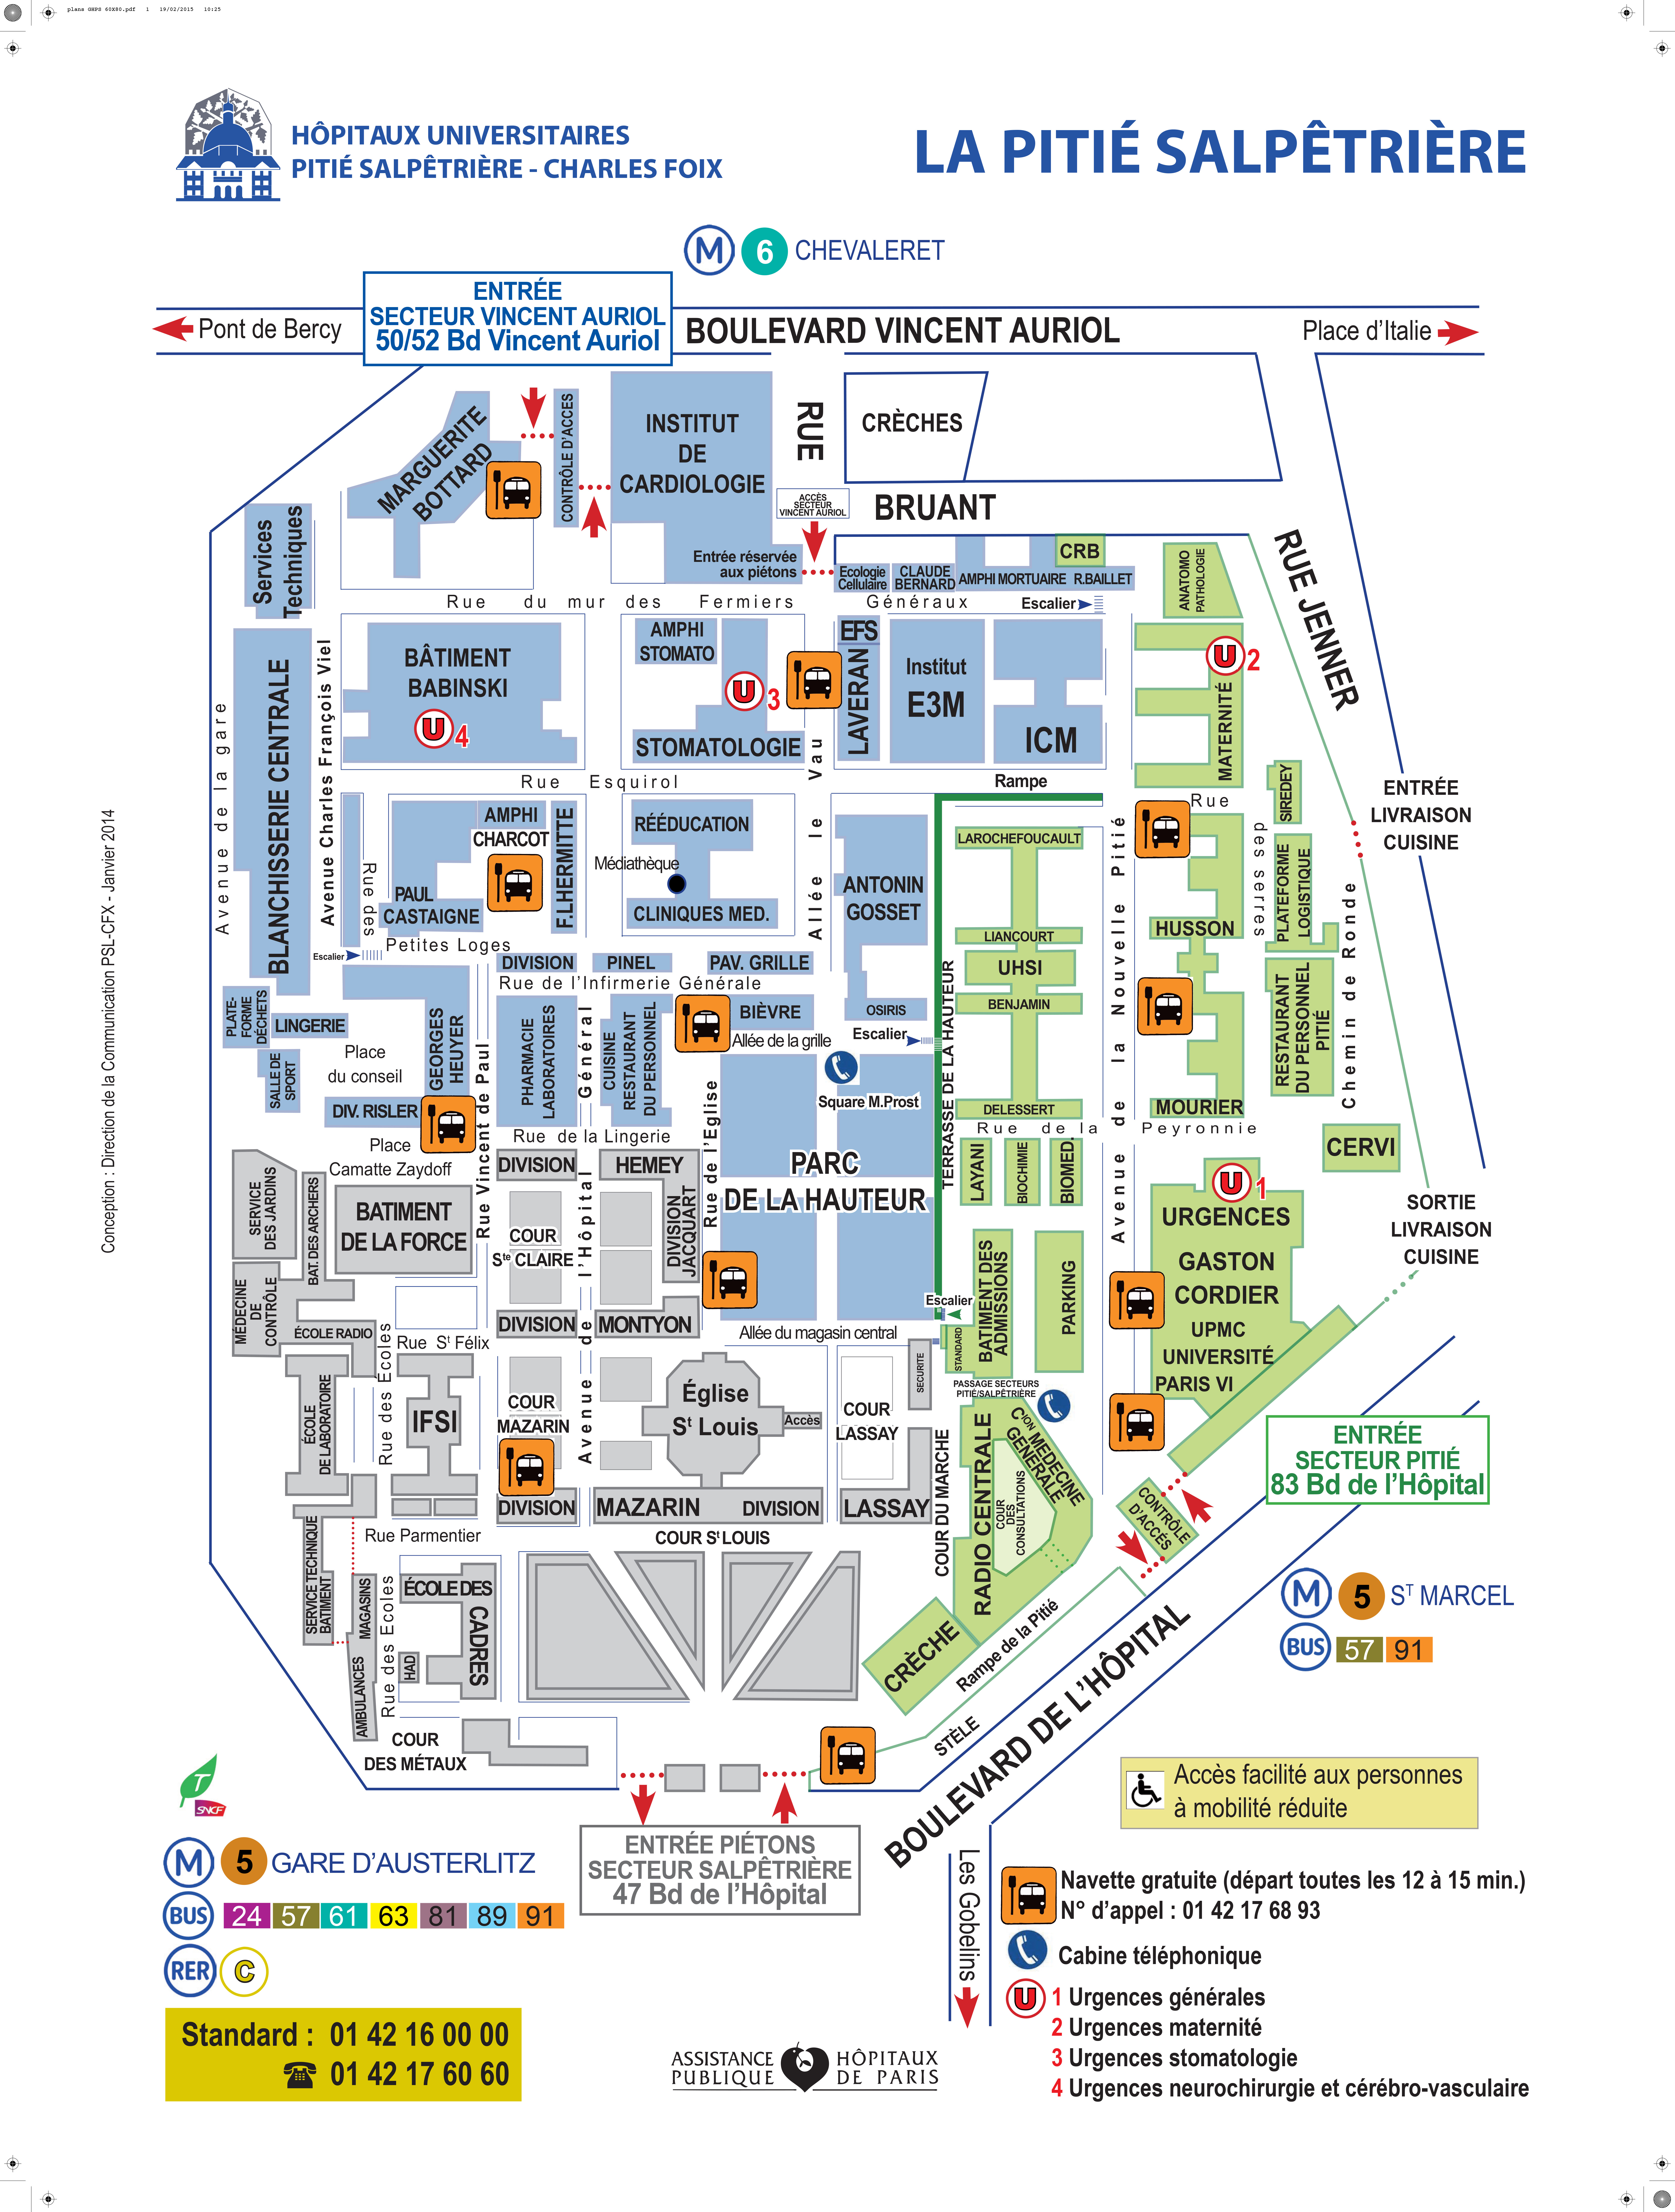 Plan De Foyer Universitaire : Plan de l h�pital universitaire piti� salp�tri�re aphp